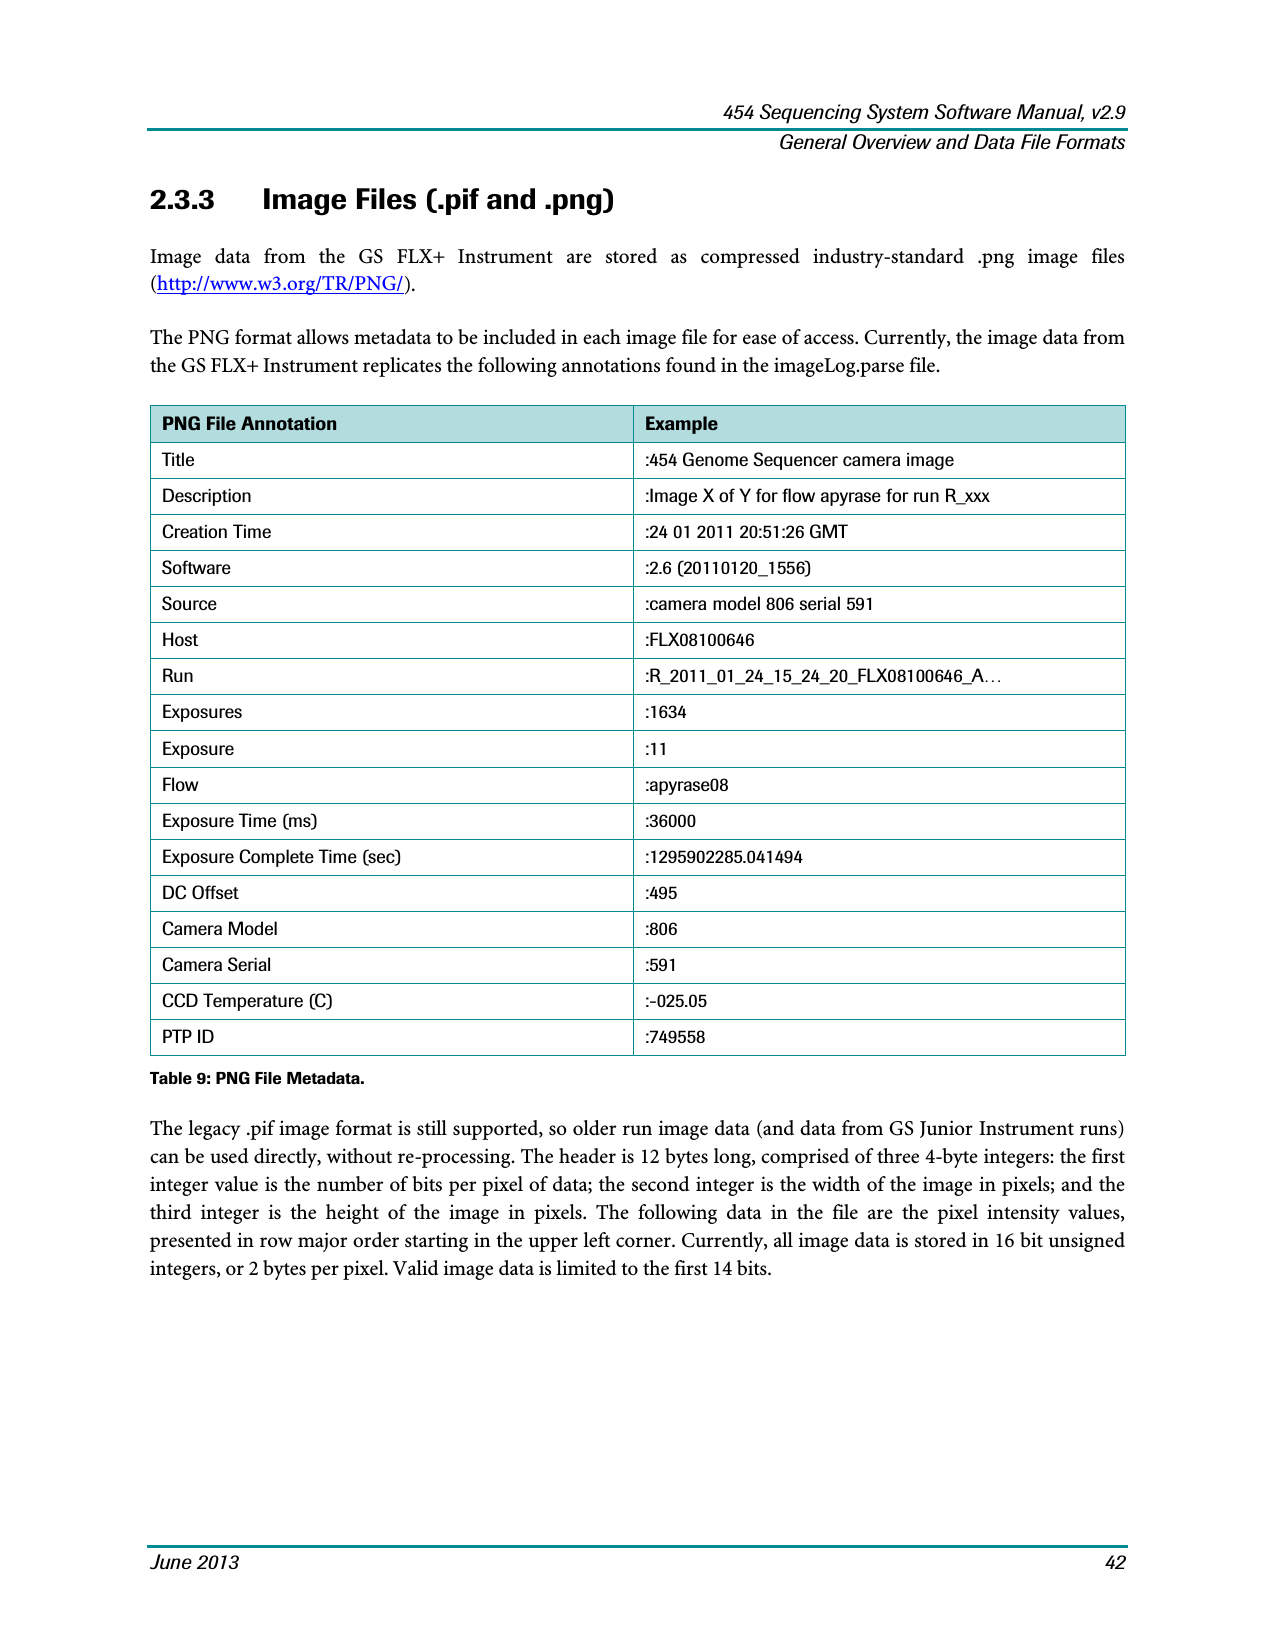 USM-00058.09_454SeqSys_SWManual-v2.9_Overview-42.png